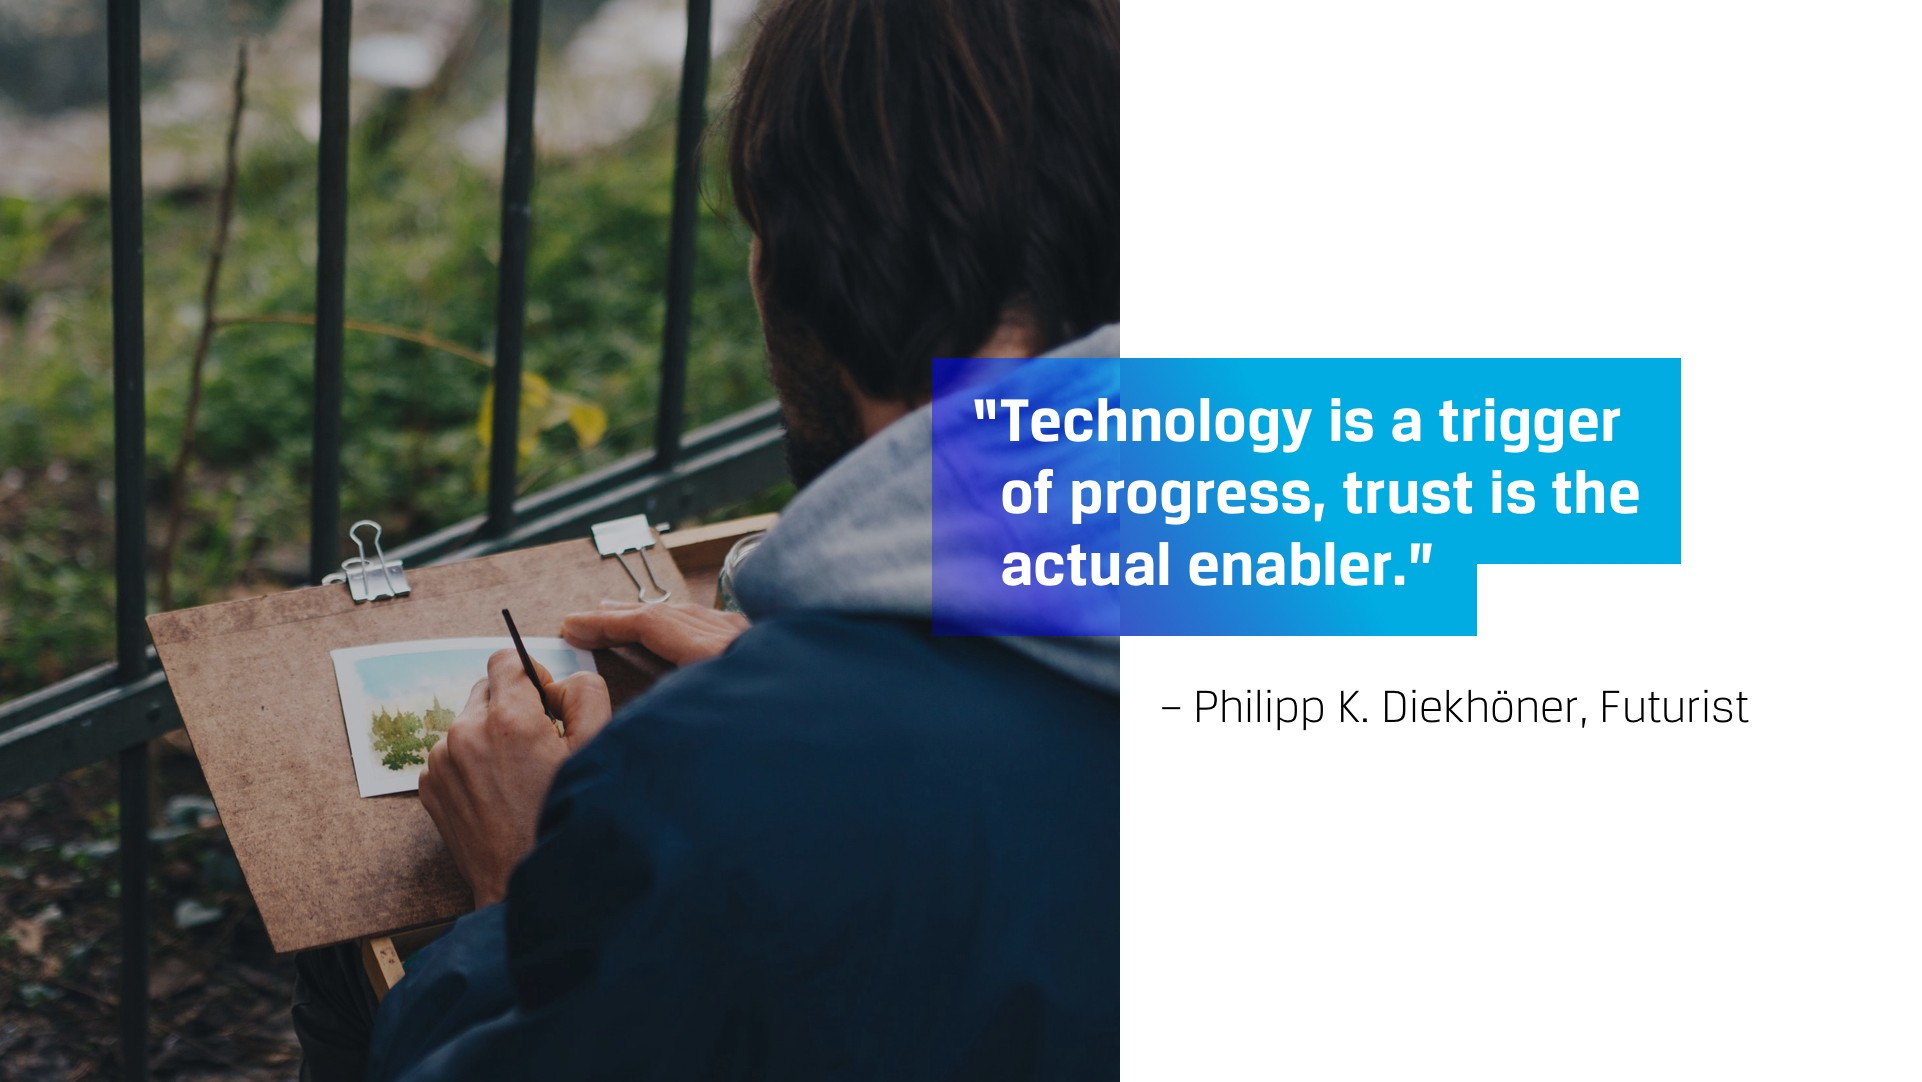 Technology is a trigger of progress, trust is the actual enabler. — Philipp K. Diekhöner